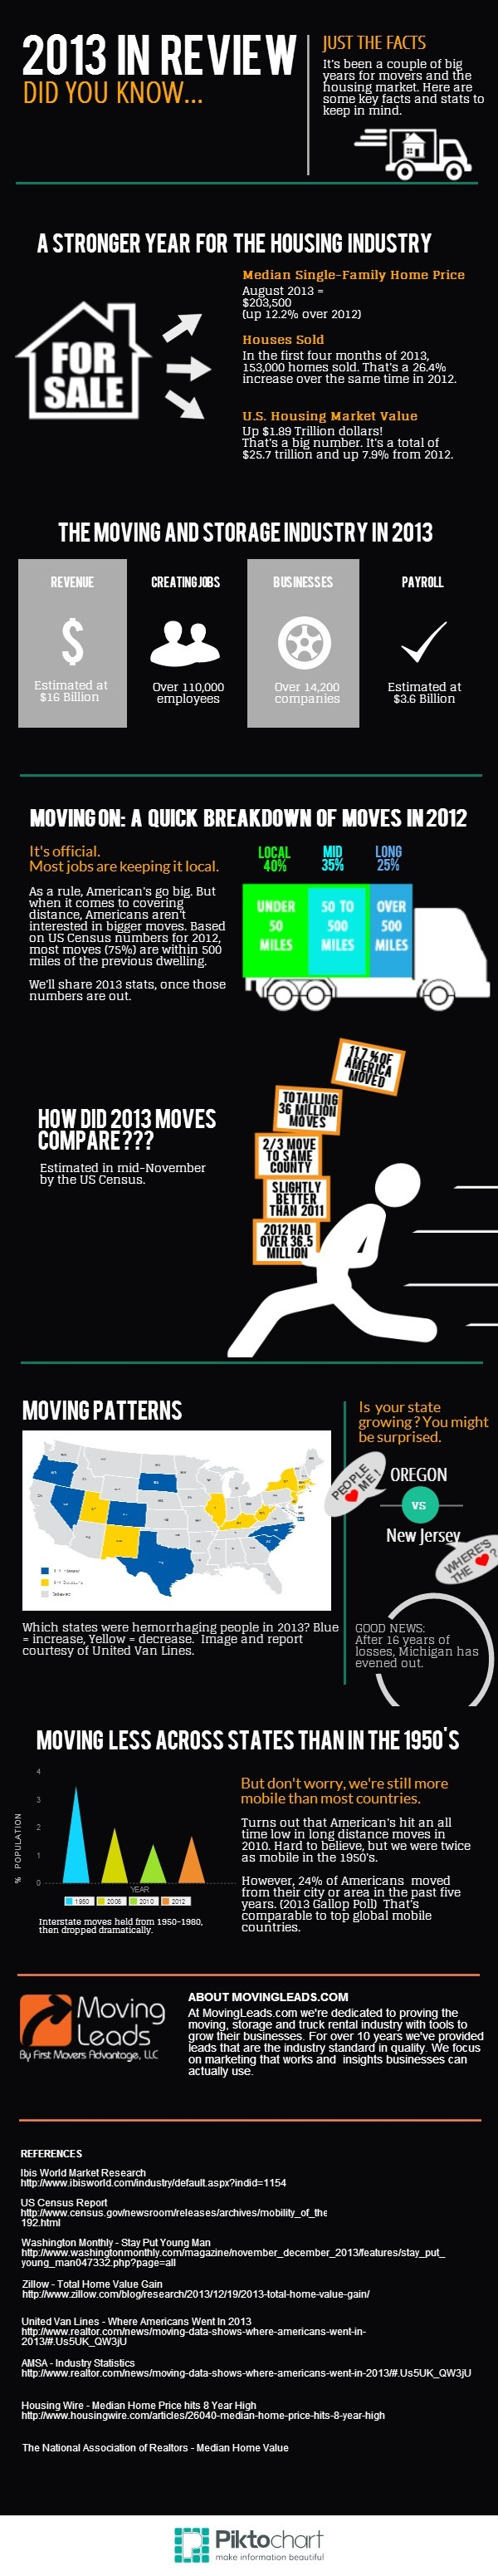 Moving stats and trends for moving and housing industries in 2013